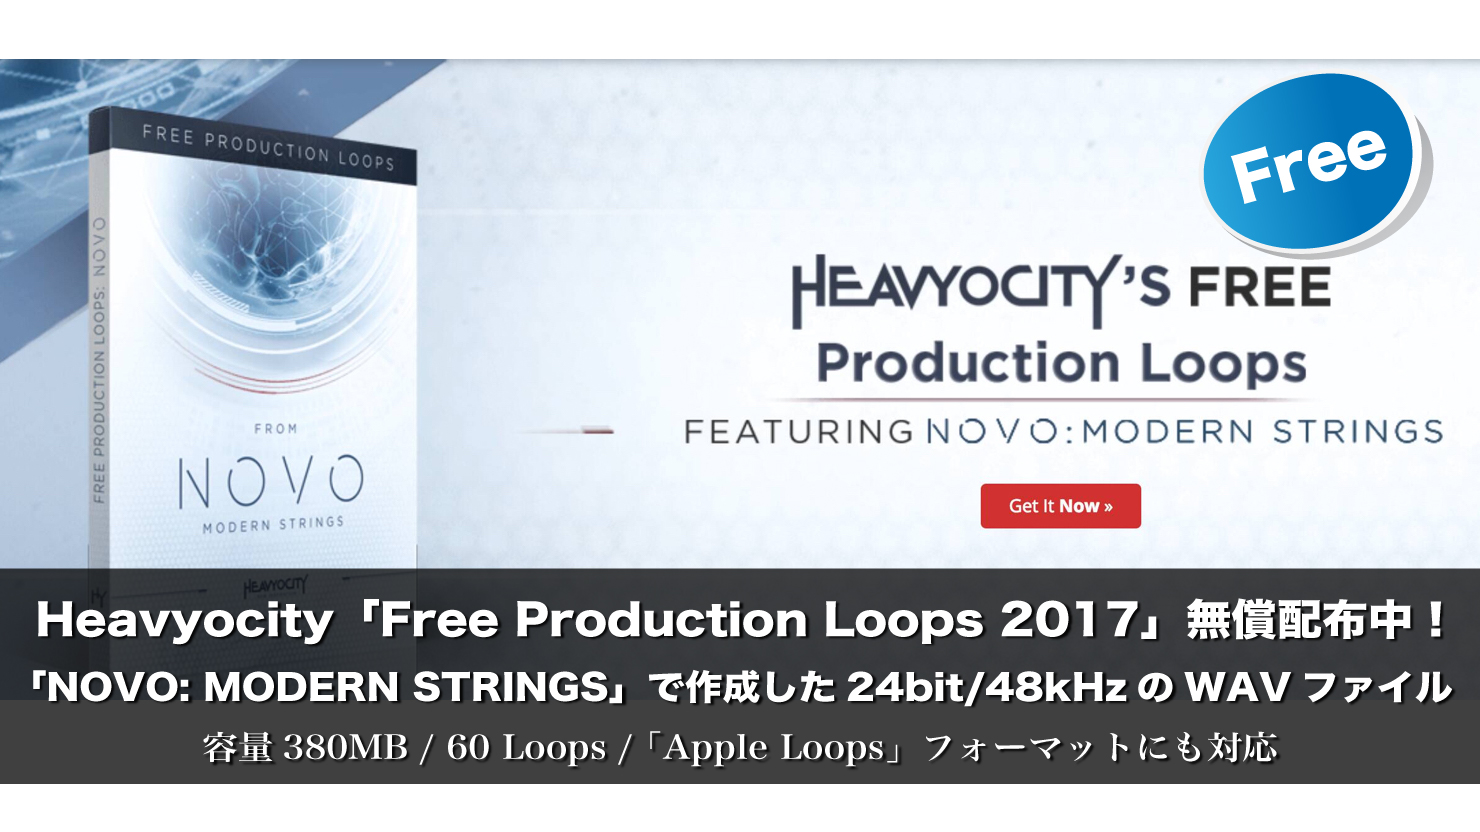 【無料】Heavyocity「Free Production Loops 2017」無償配布中!24bit/48kHz WAVの高音質ループ素材